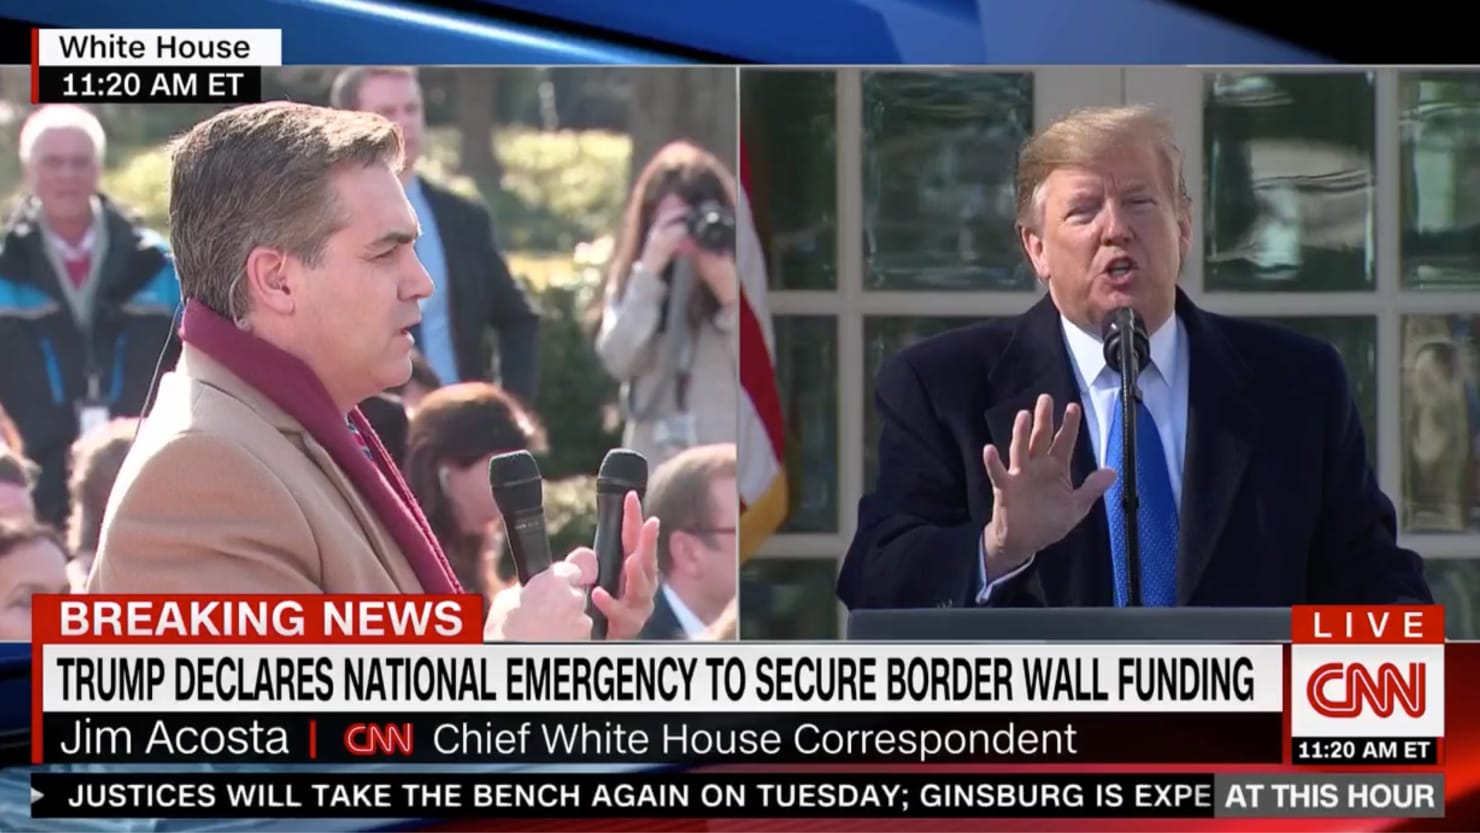 CNN World News Picture: Trump Spars With CNN's Jim Acosta During National